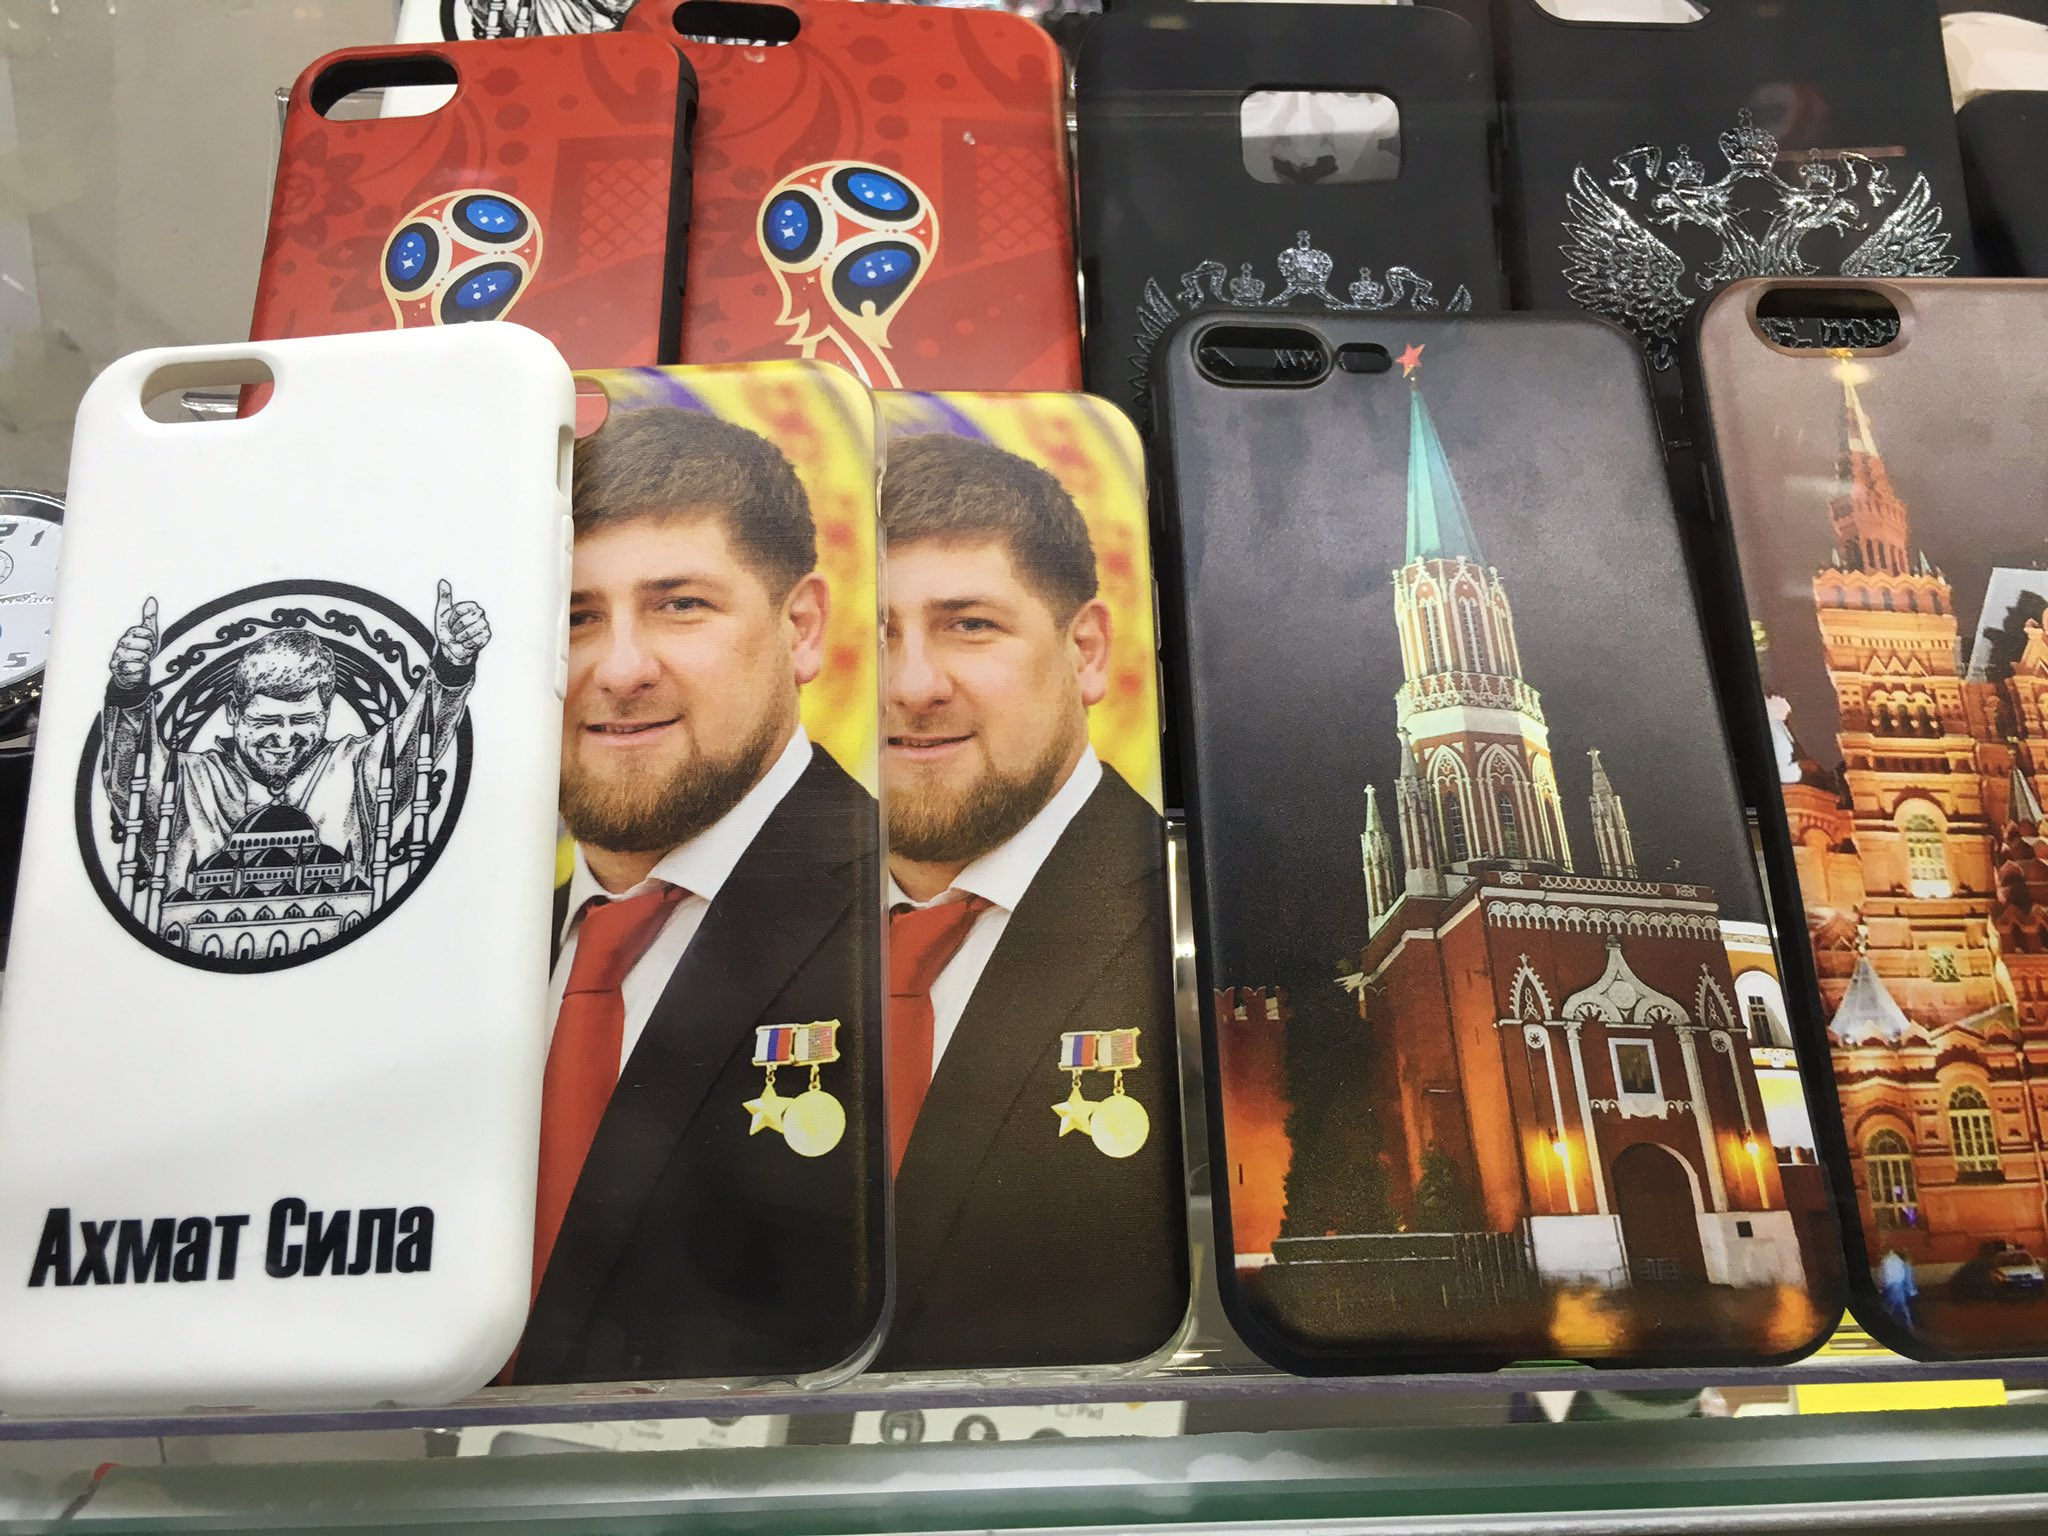 On sale near the Kremlin, smart phone covers featuring Chechen leader Ramzan Kadyrov. https://t.co/DrbP5CZh3g